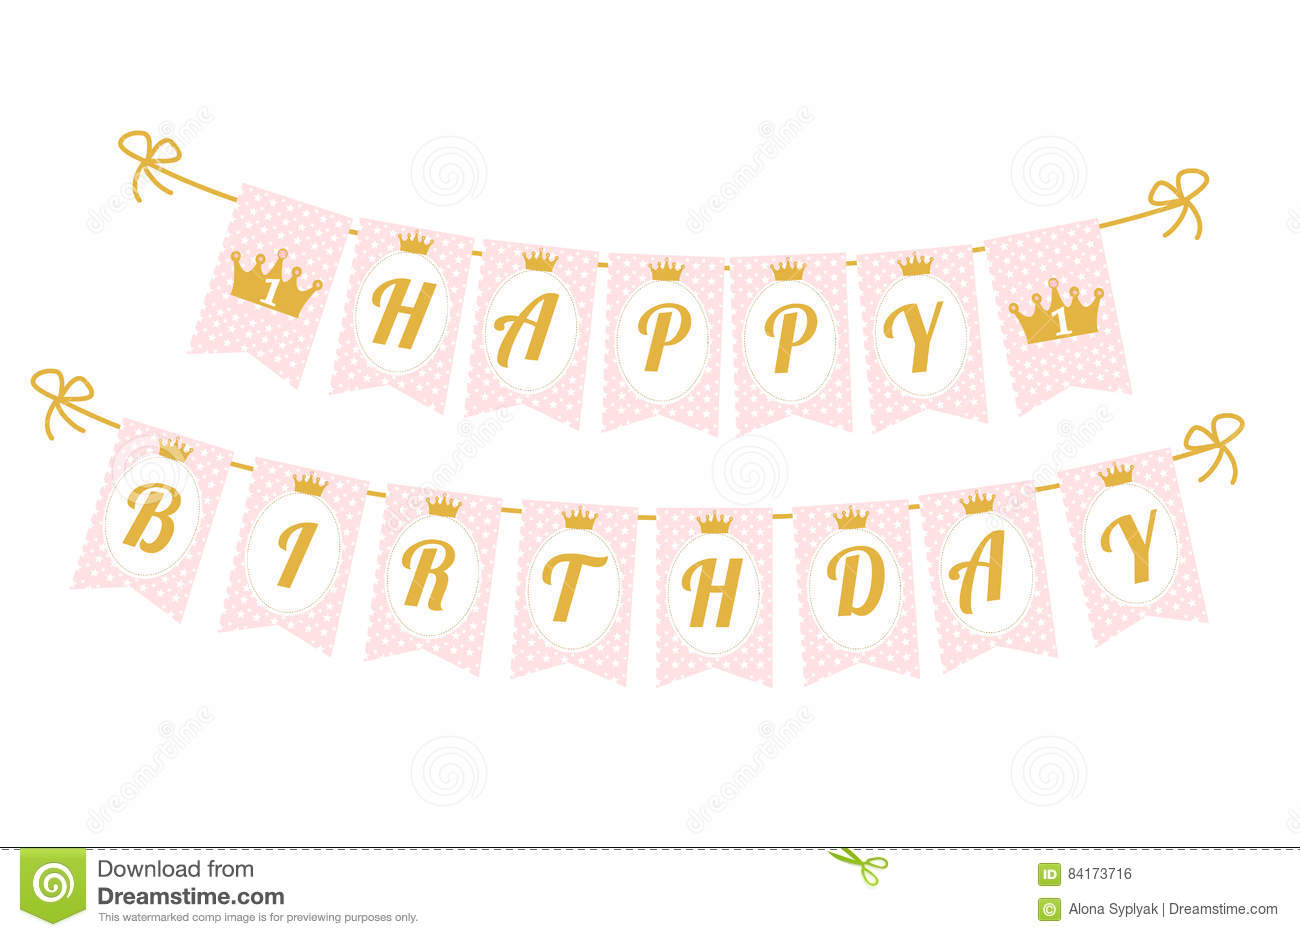 happy birthday flag banner ; cute-pennant-banner-as-flags-letters-happy-birthday-princess-style-printable-template-baby-pattern-pink-gold-design-84173716